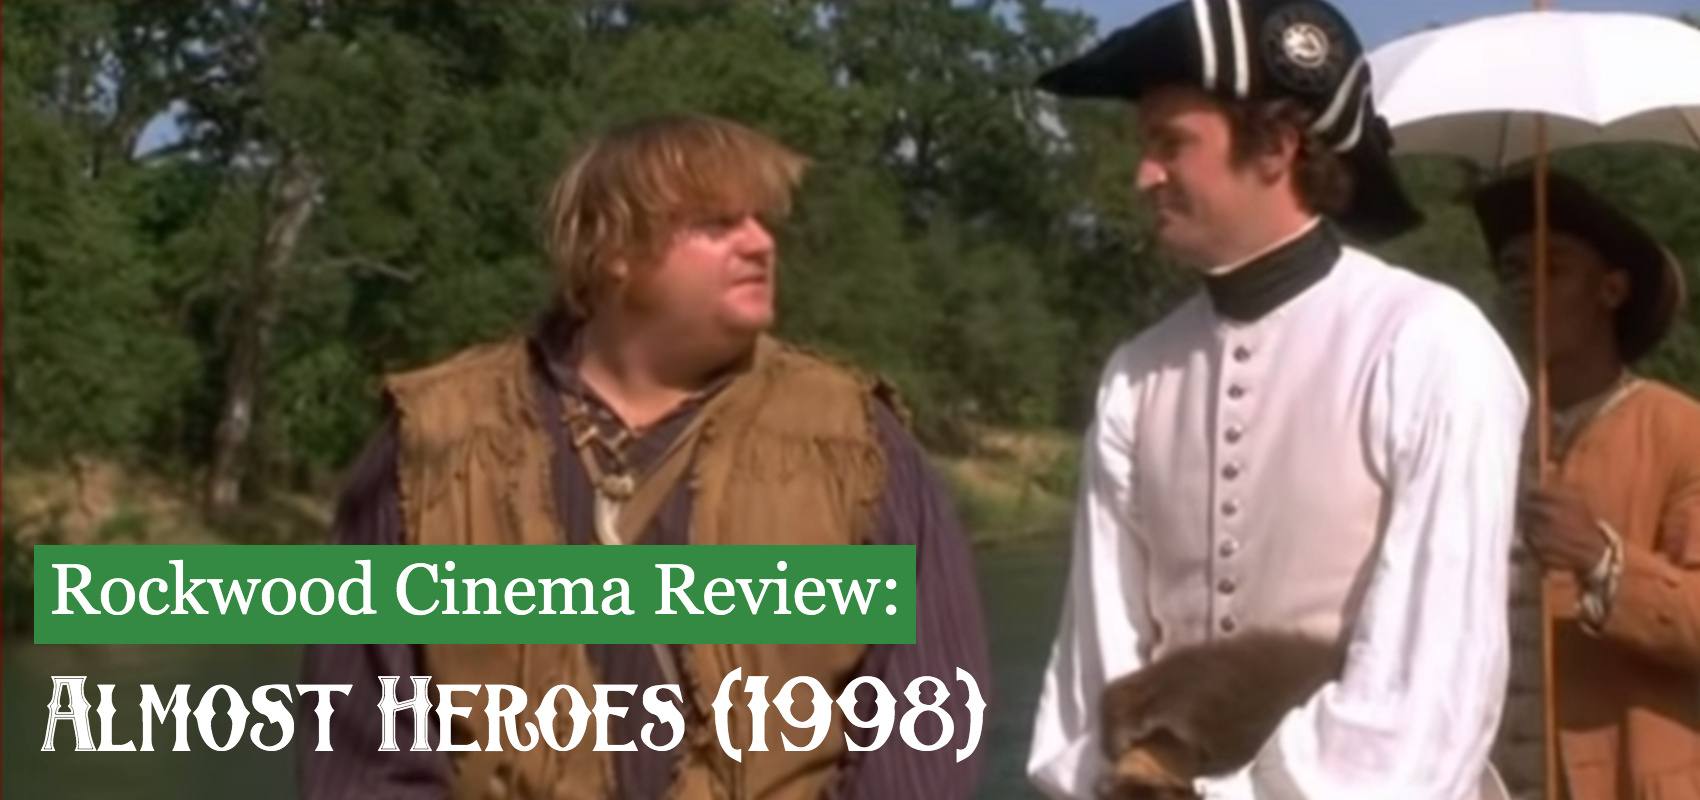 A dishevelled Chris Farley looks at Matthew Perry wearing a colonial hat and white puffy armed shirt in the woods.